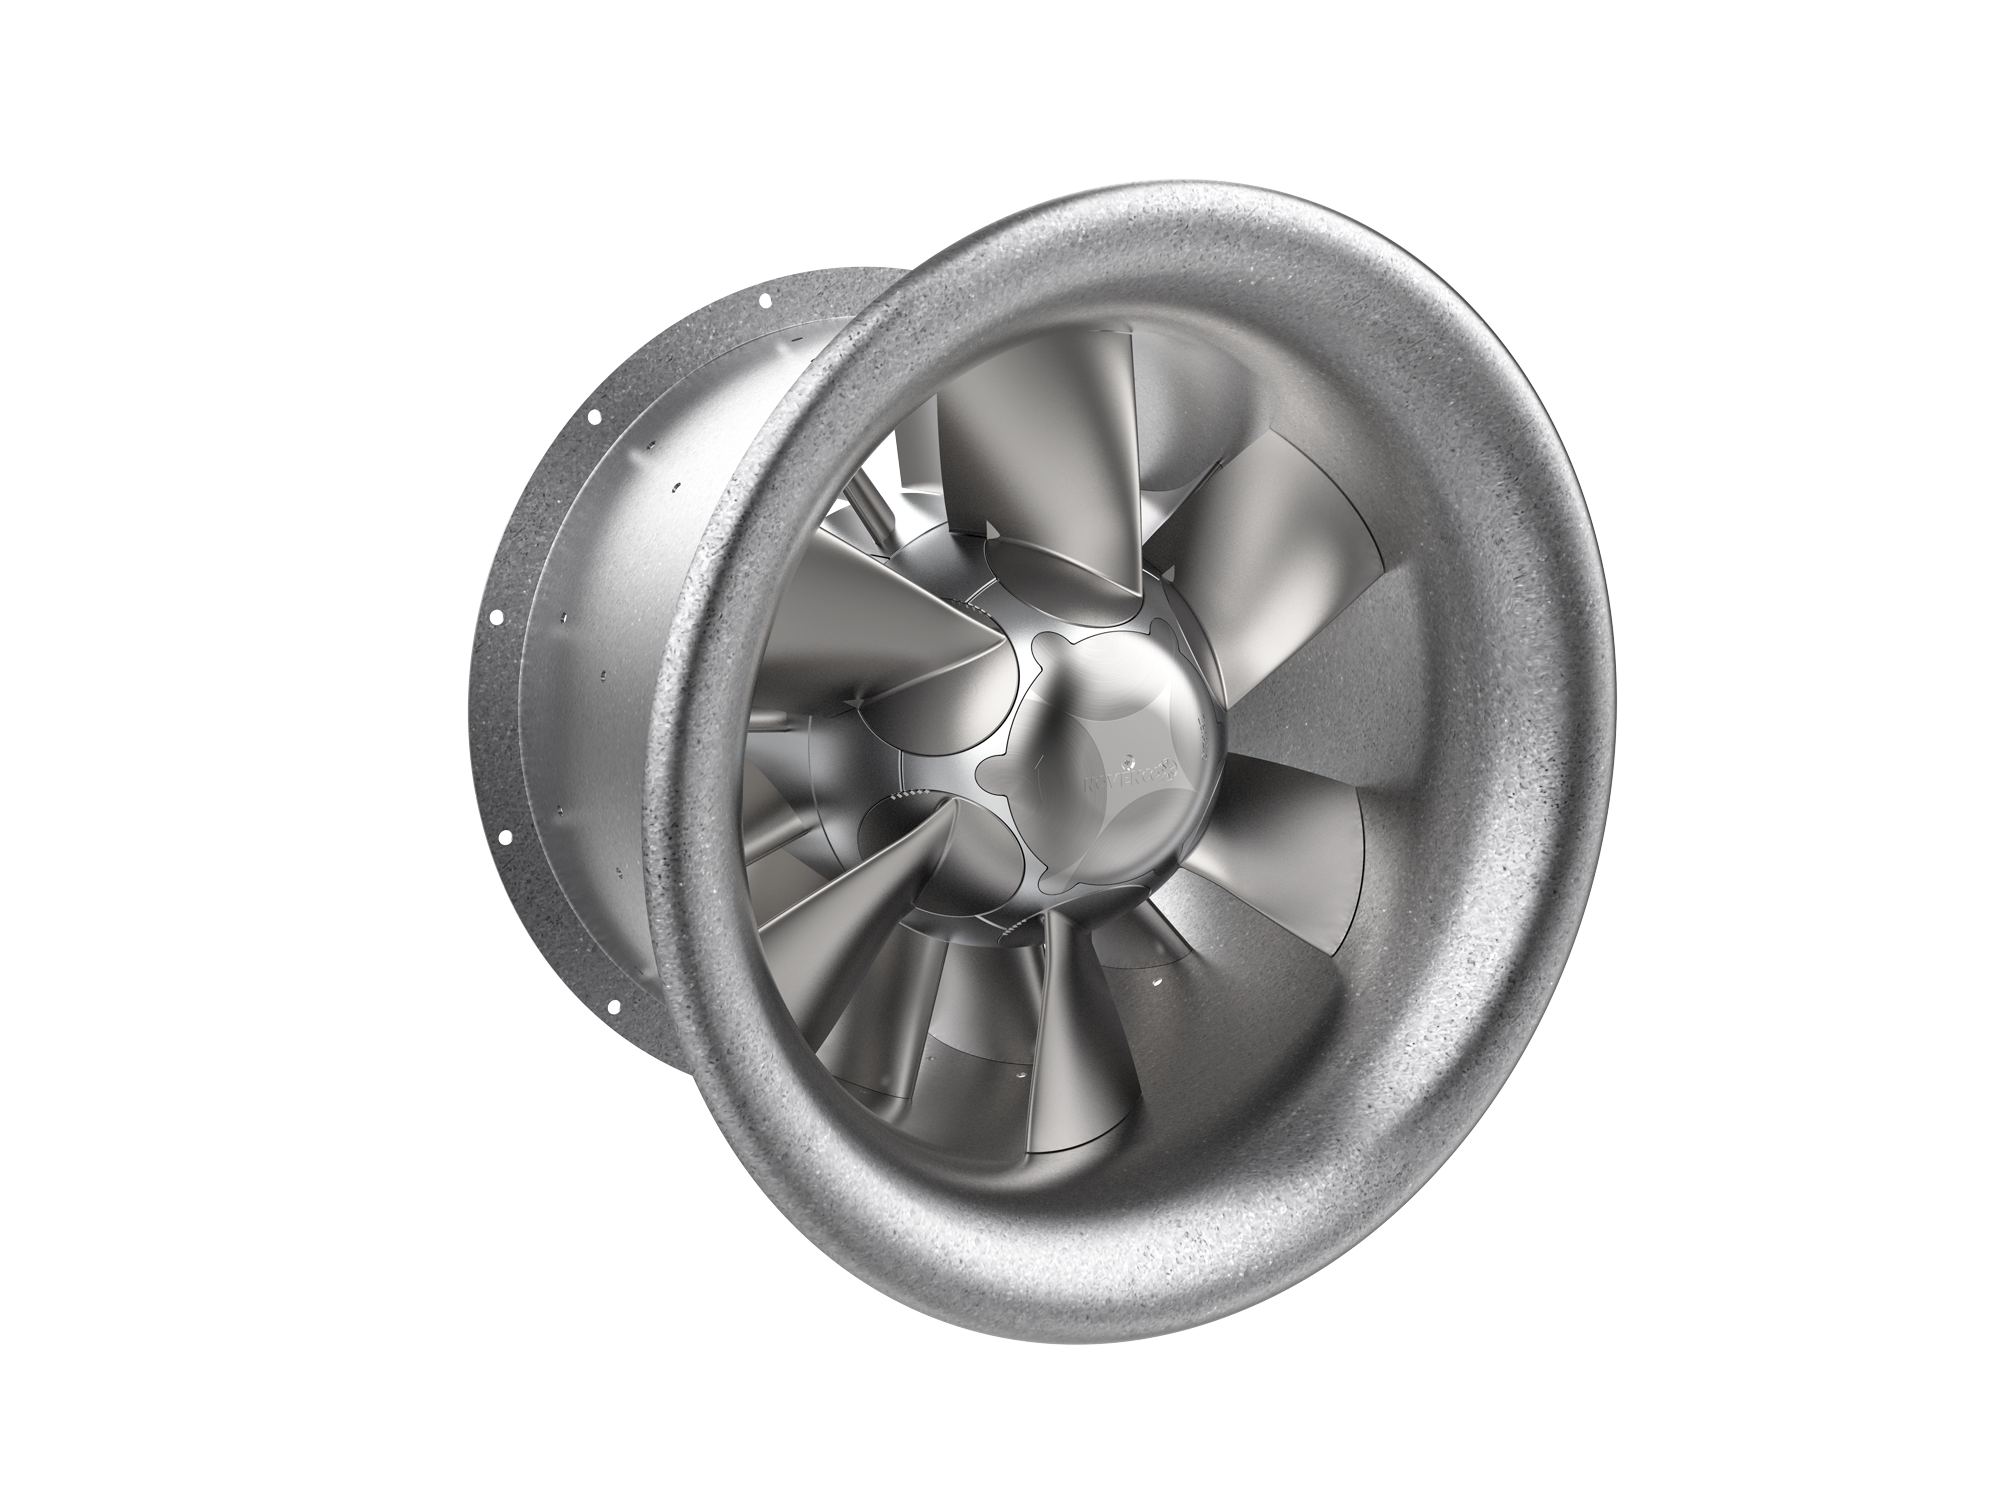 Axial flow fans » See all our high efficient Axial Flow Fans